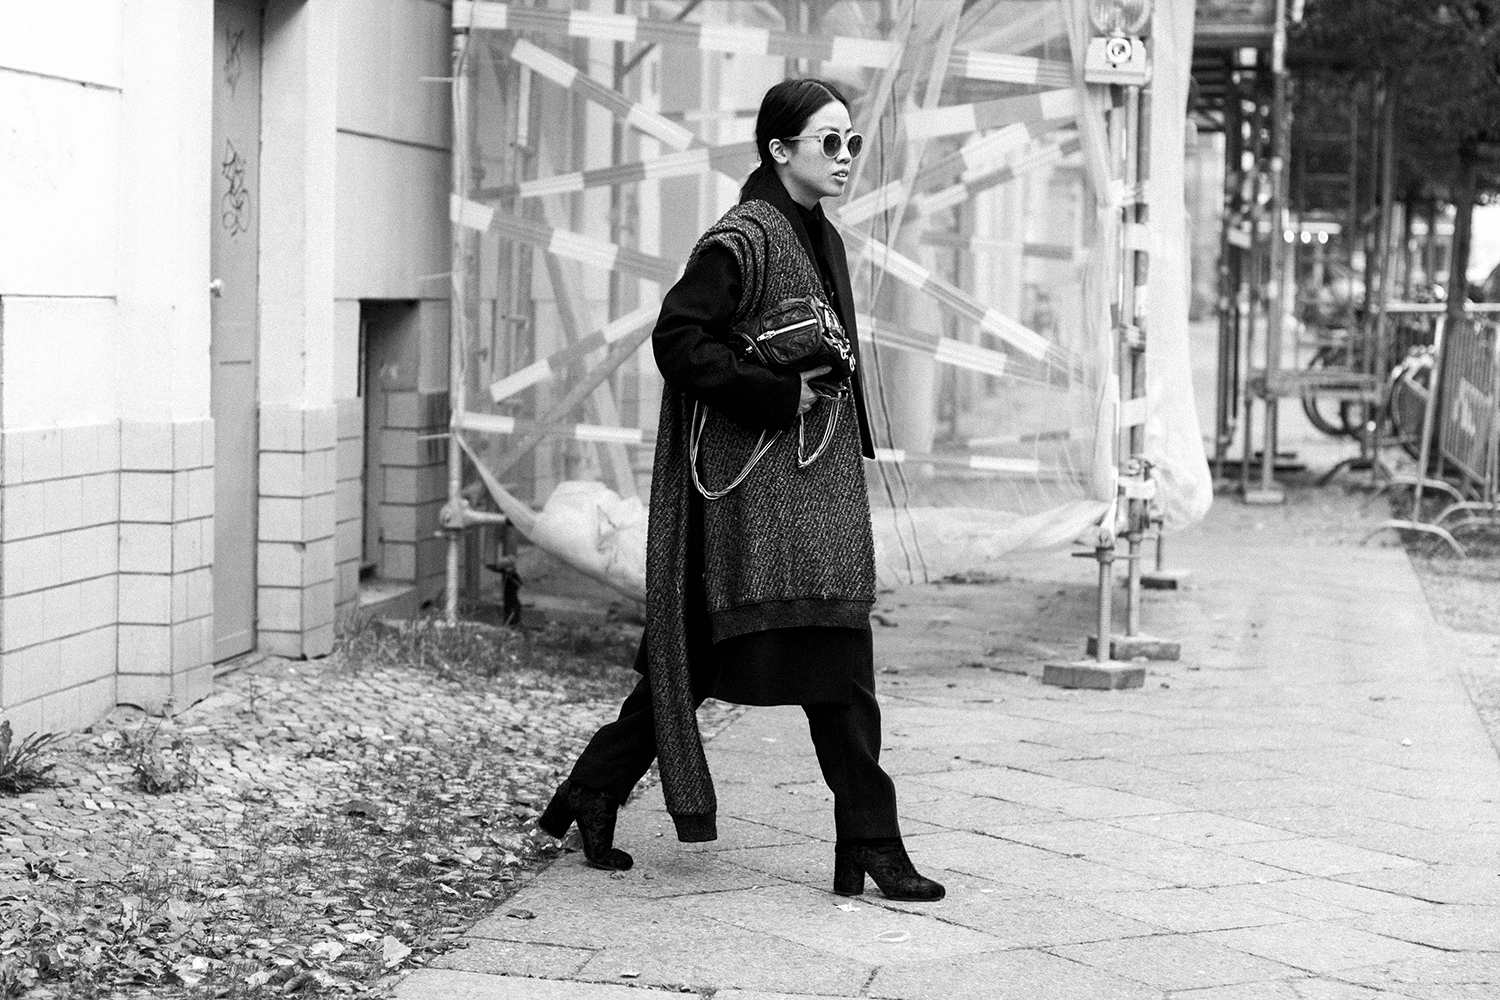 IHEARTALICE.DE - Travel, Food, Lifestyle and Fashion-Blog from Berlin/Germany by Alice M. Huynh: All Black OOTD wearing Maison Martin Margiela Wool Coat, Weekday Turtleneck Dress, COS Silk Pants, Alexander Wang Knit Scarf, Alexander Wang Brenda Leather Bag, Maison Martin Margiela Arabesque Velvet Tabi Boots, Malaika Raiss x VIU Shades in rosé / Androgynous Chic